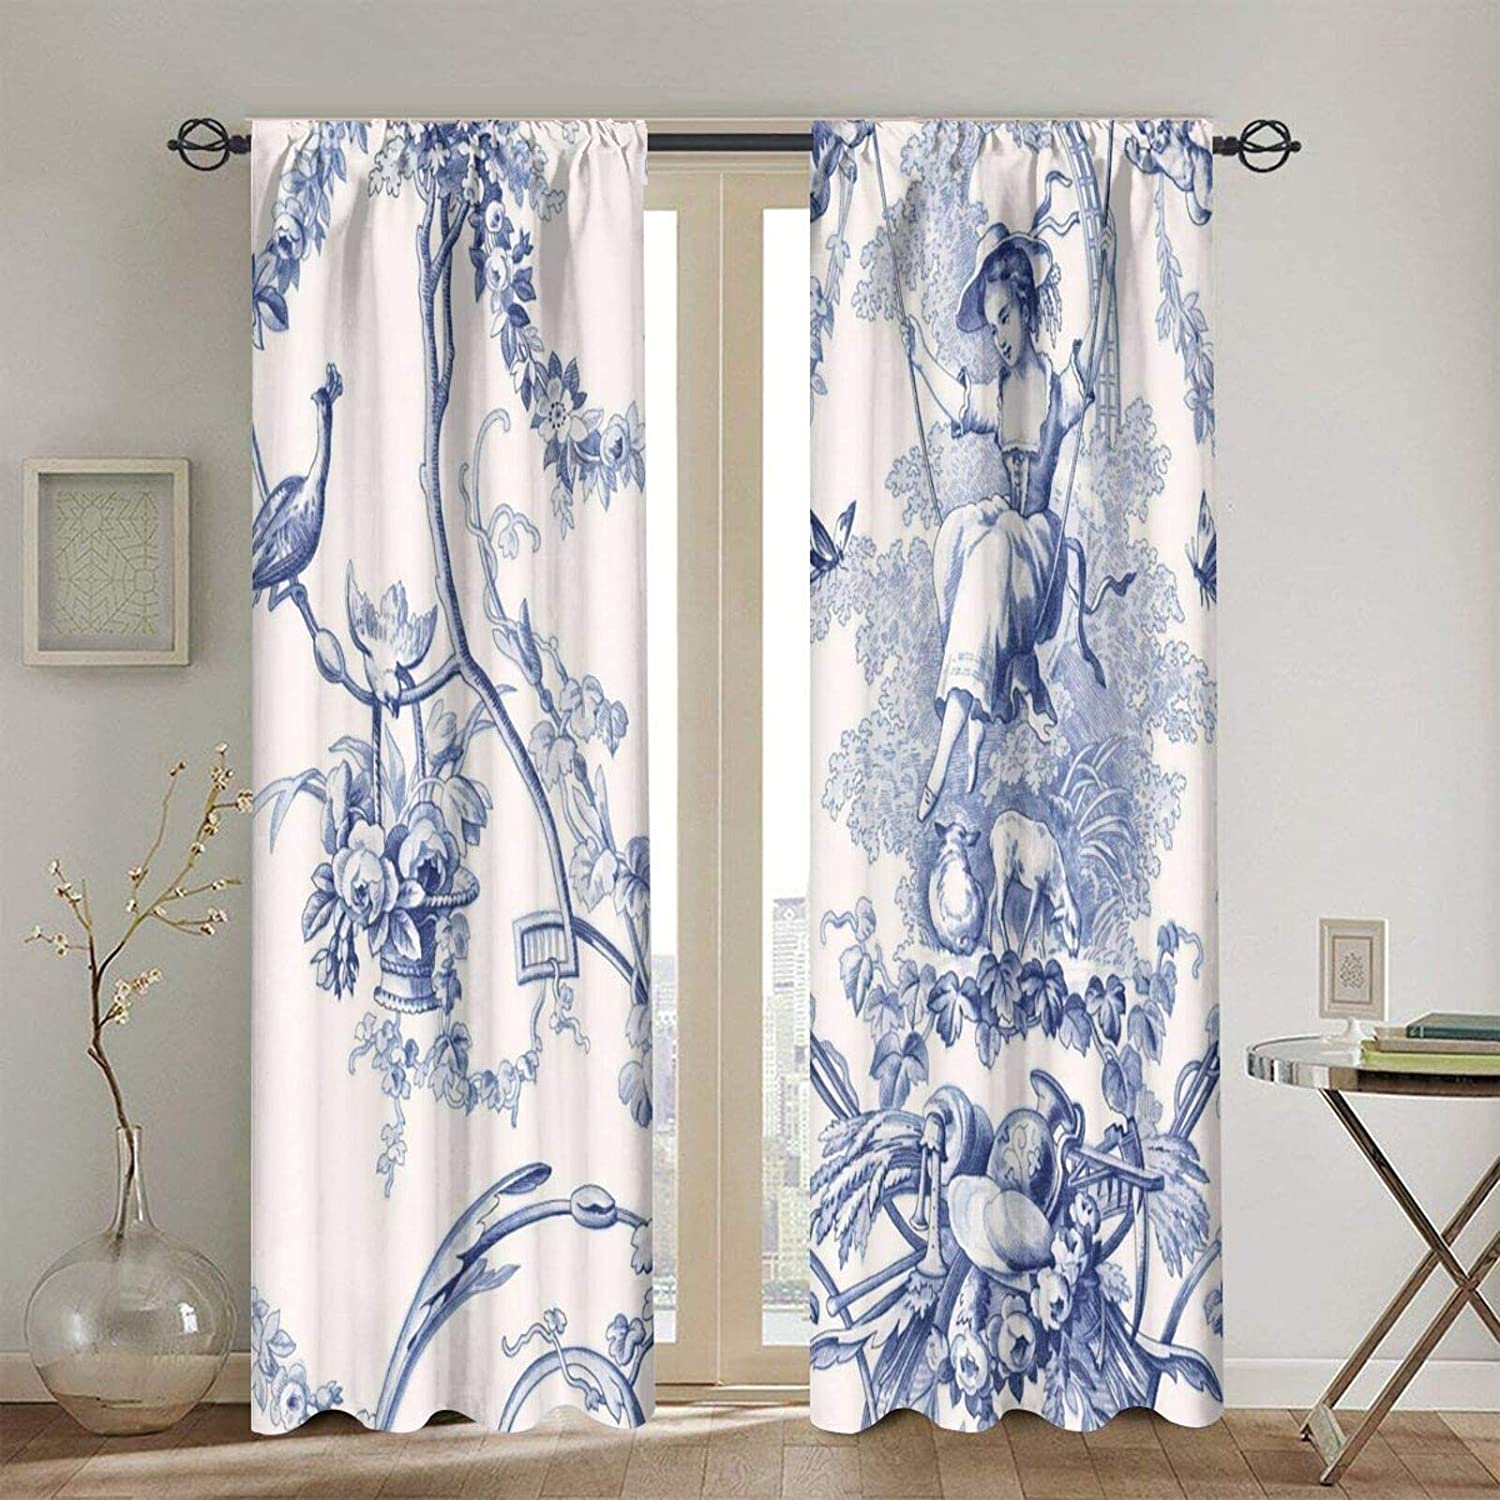 French Country Toile Print Blackout Curtains Today's only Curtain Fashion Panel